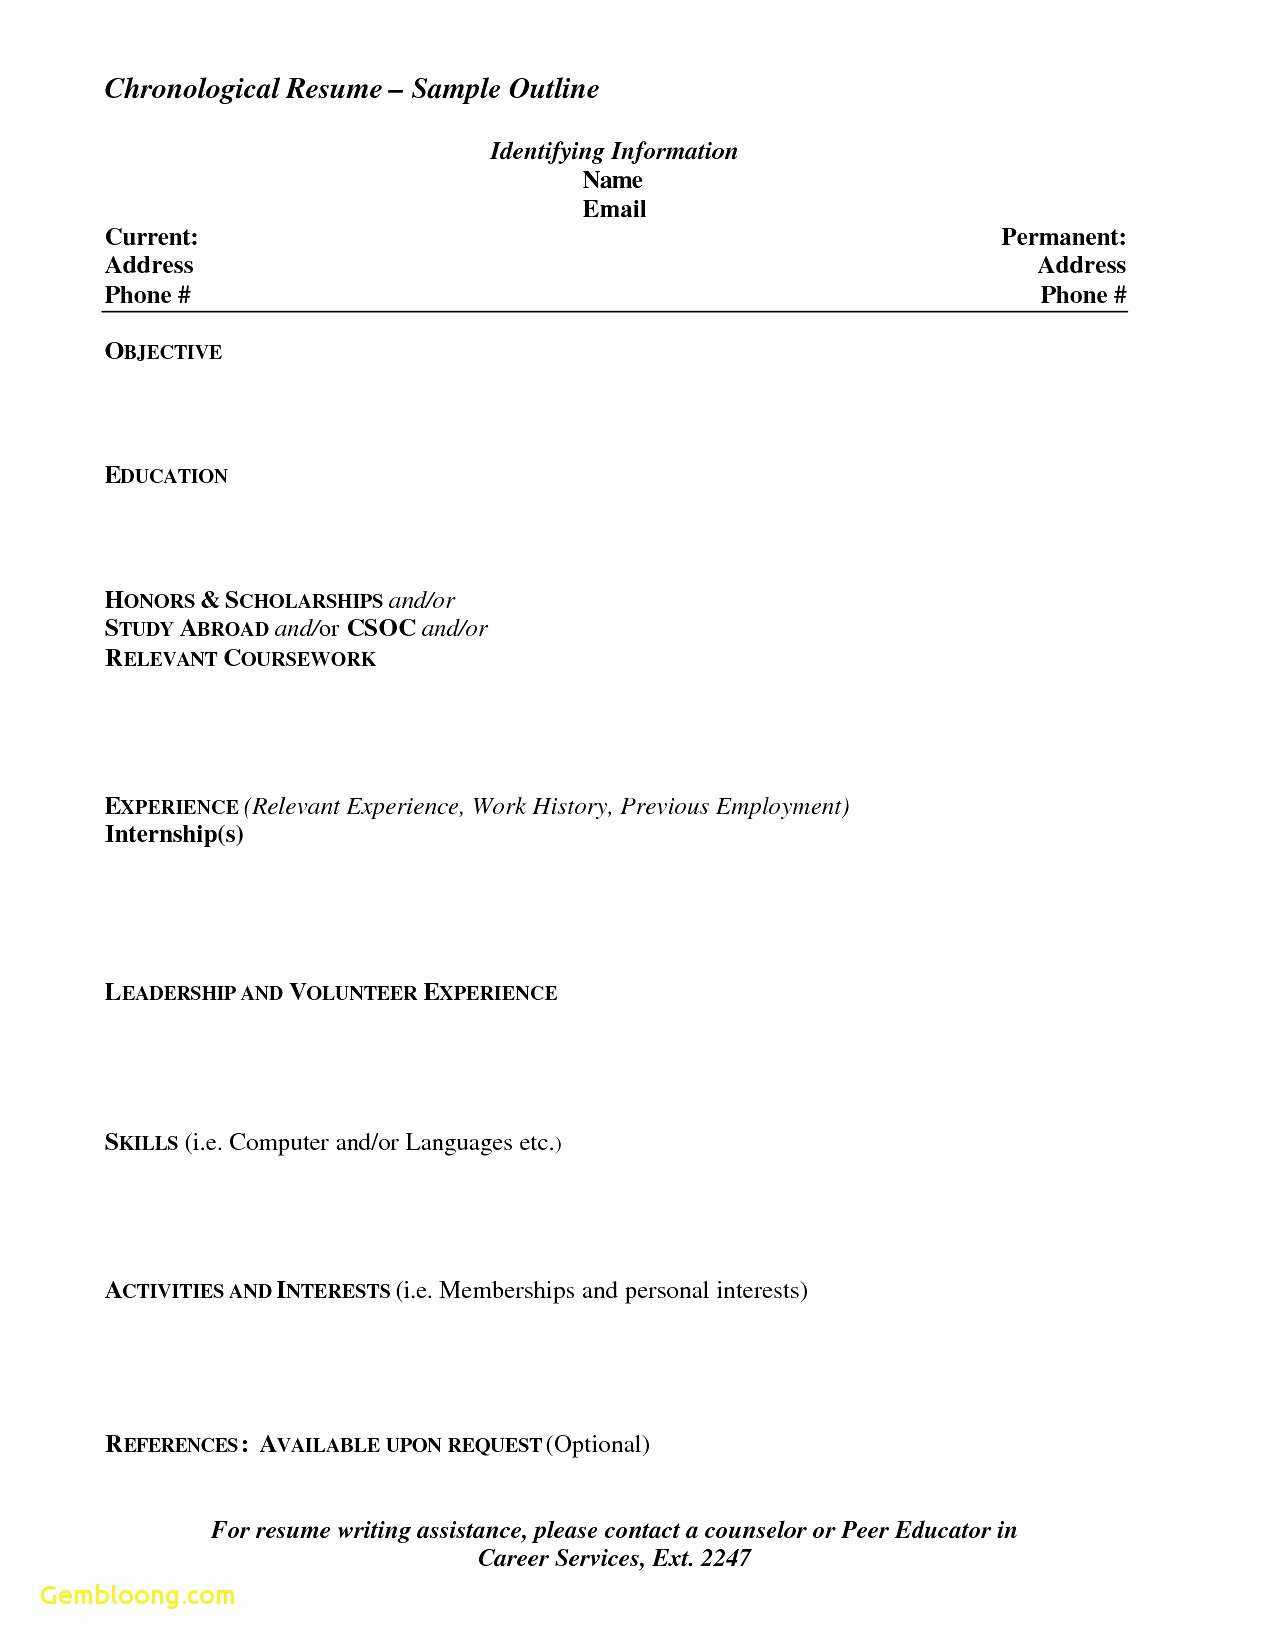 internal cover letter template Collection-Internal Job Resume Unique Resume for Apply How to format A Cover Letter Best formatted Resume 19-e